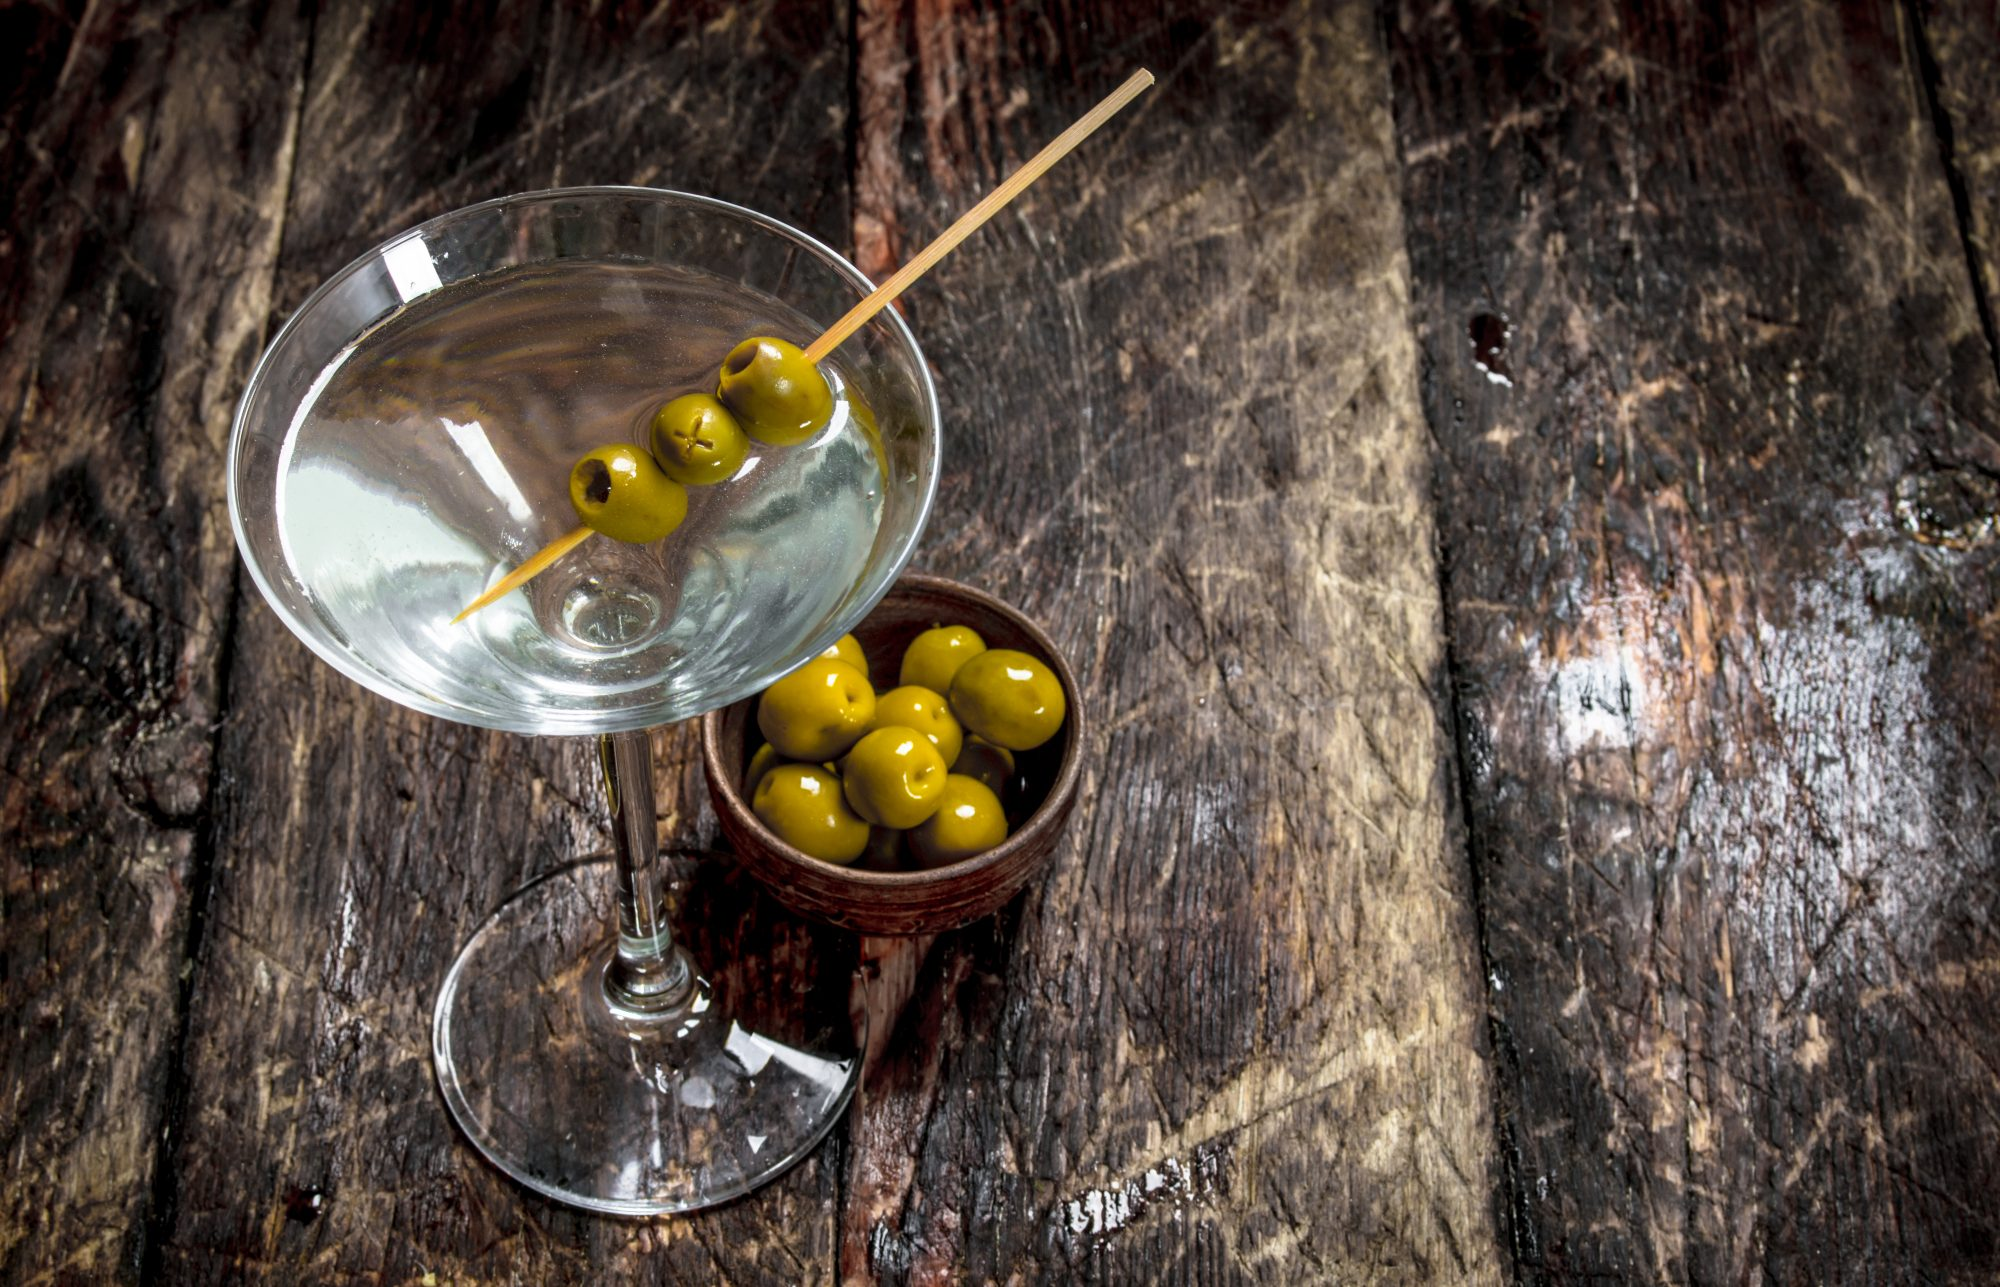 Soak Your Olives in Booze for the Ultimate Summer Snack